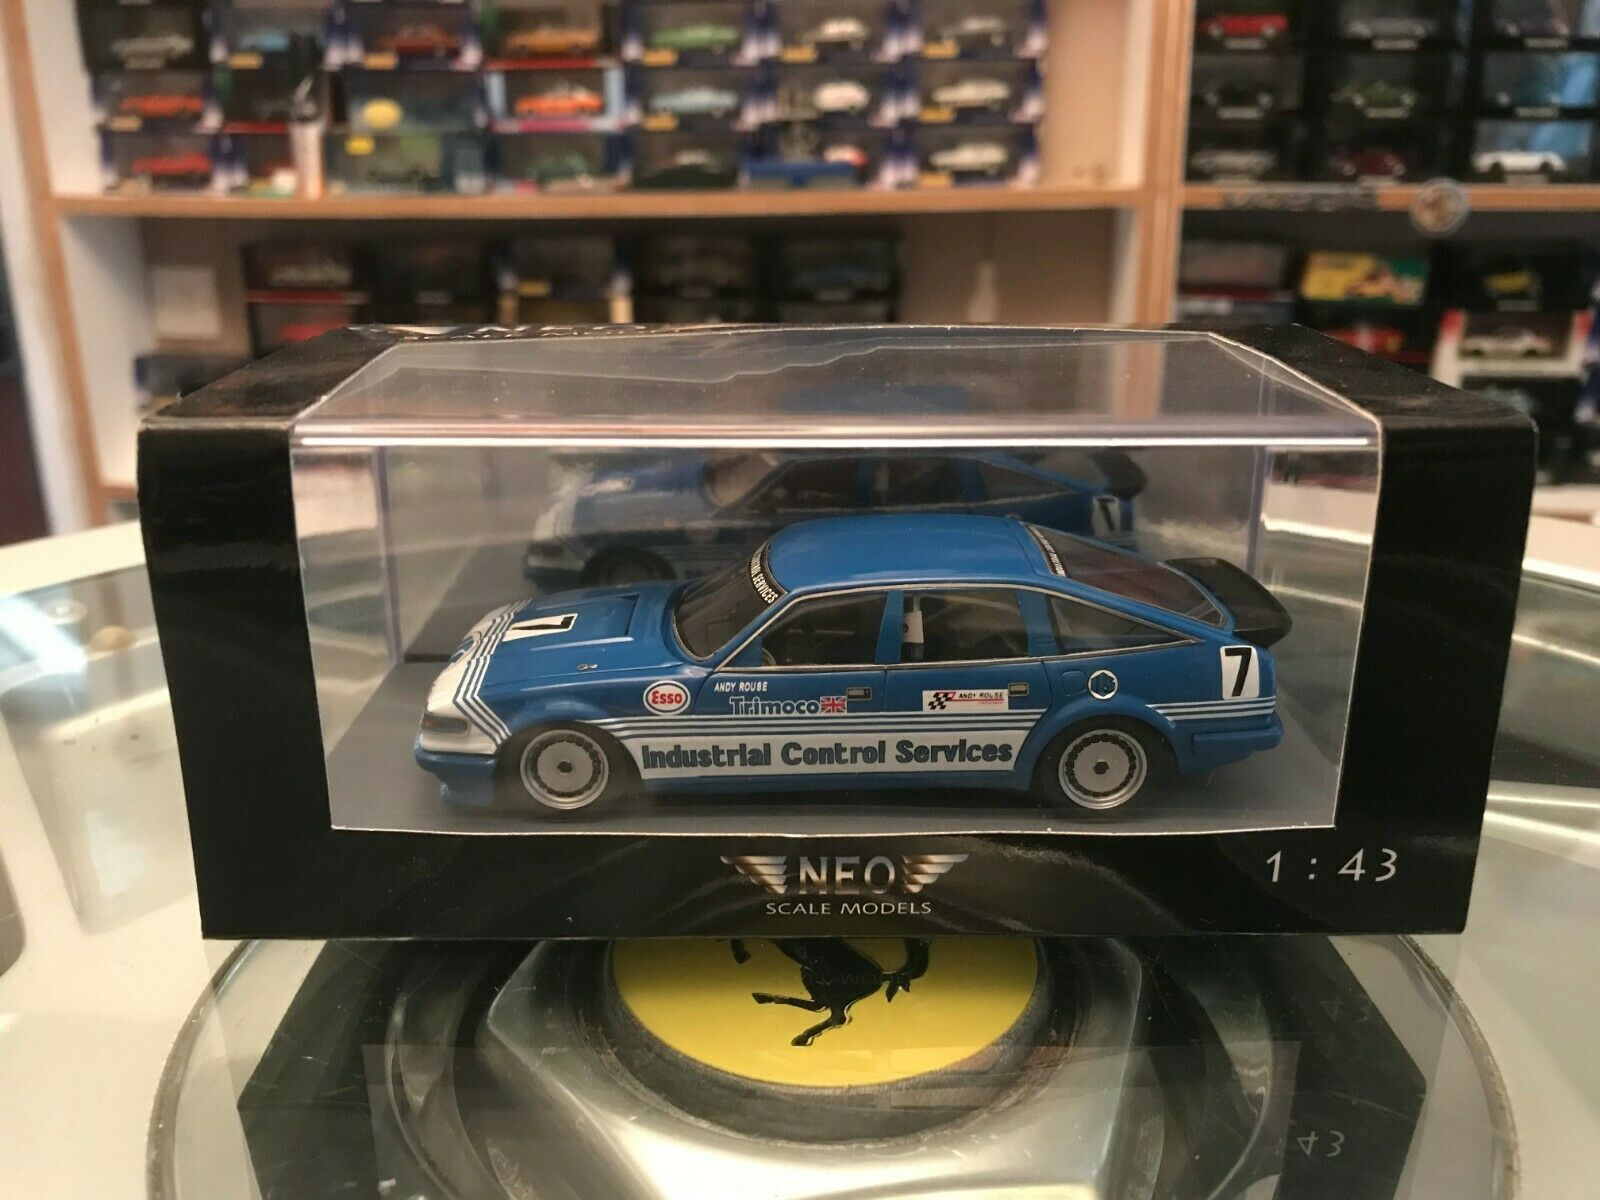 Neo 1984 Rover Vitesse ICS Andy Rouse BSCC 1 43 MIB only 300 pieces  Exc Detail